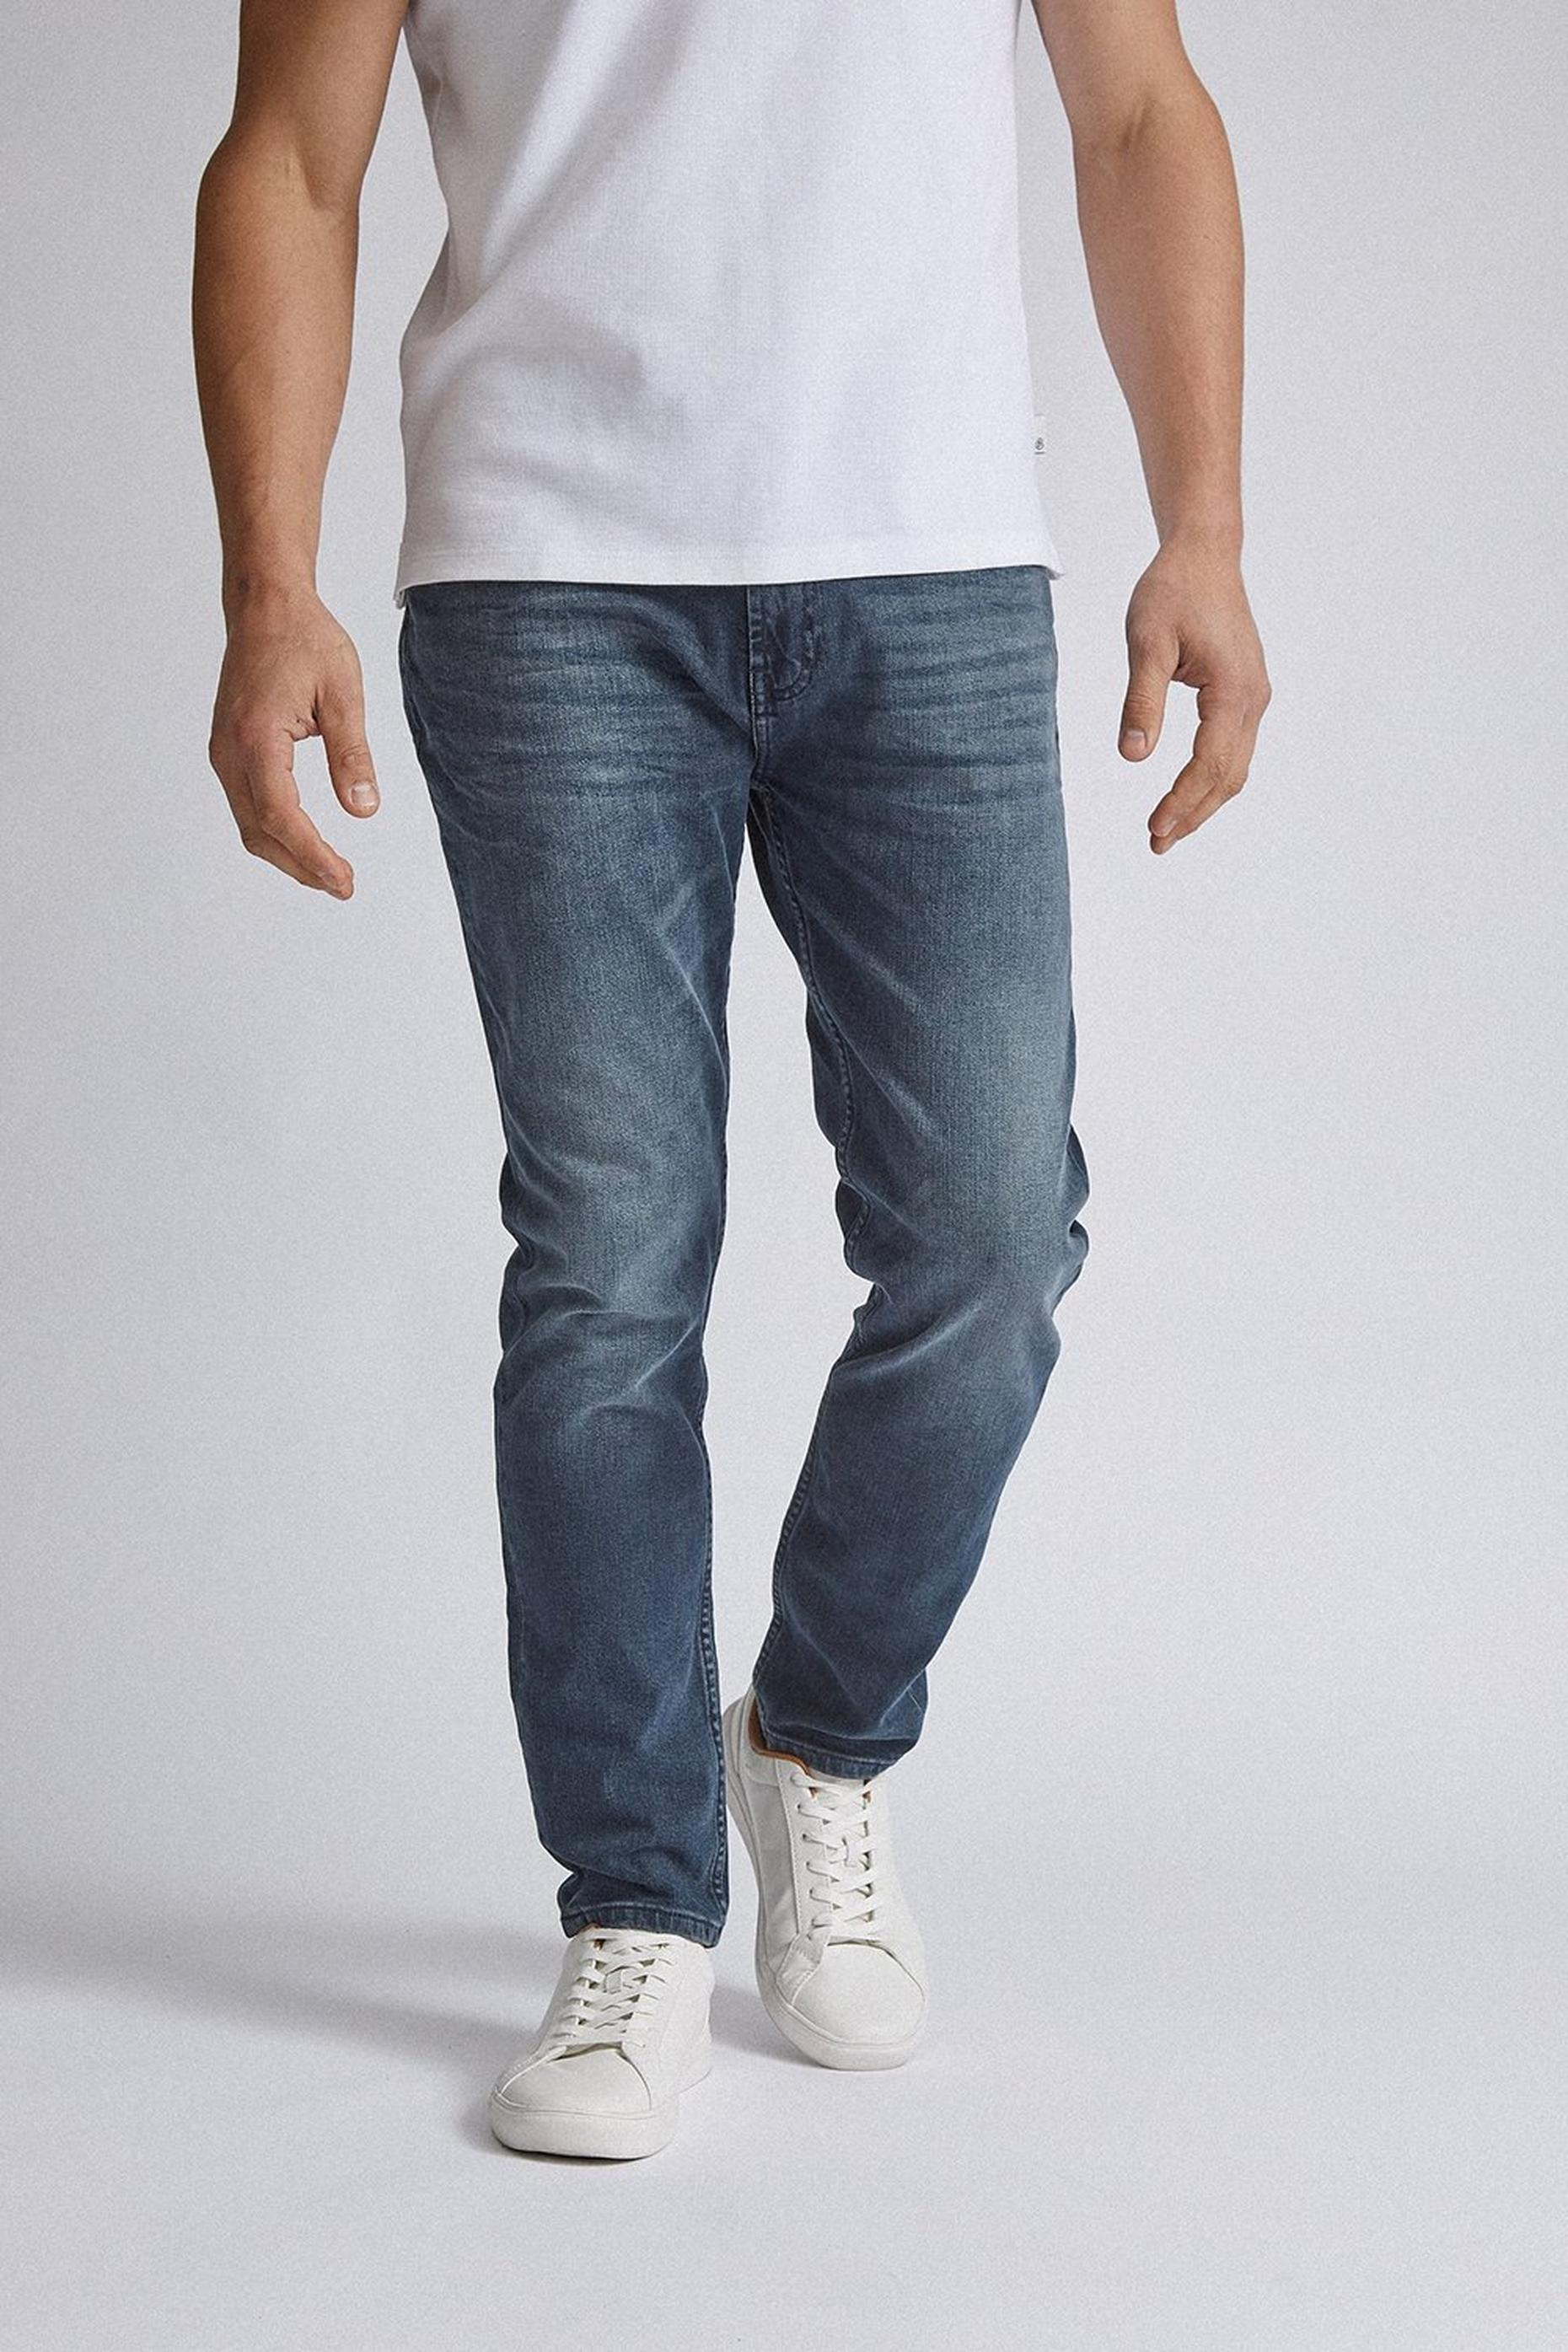 Blue Carter Tapered Fit Overdye Jeans